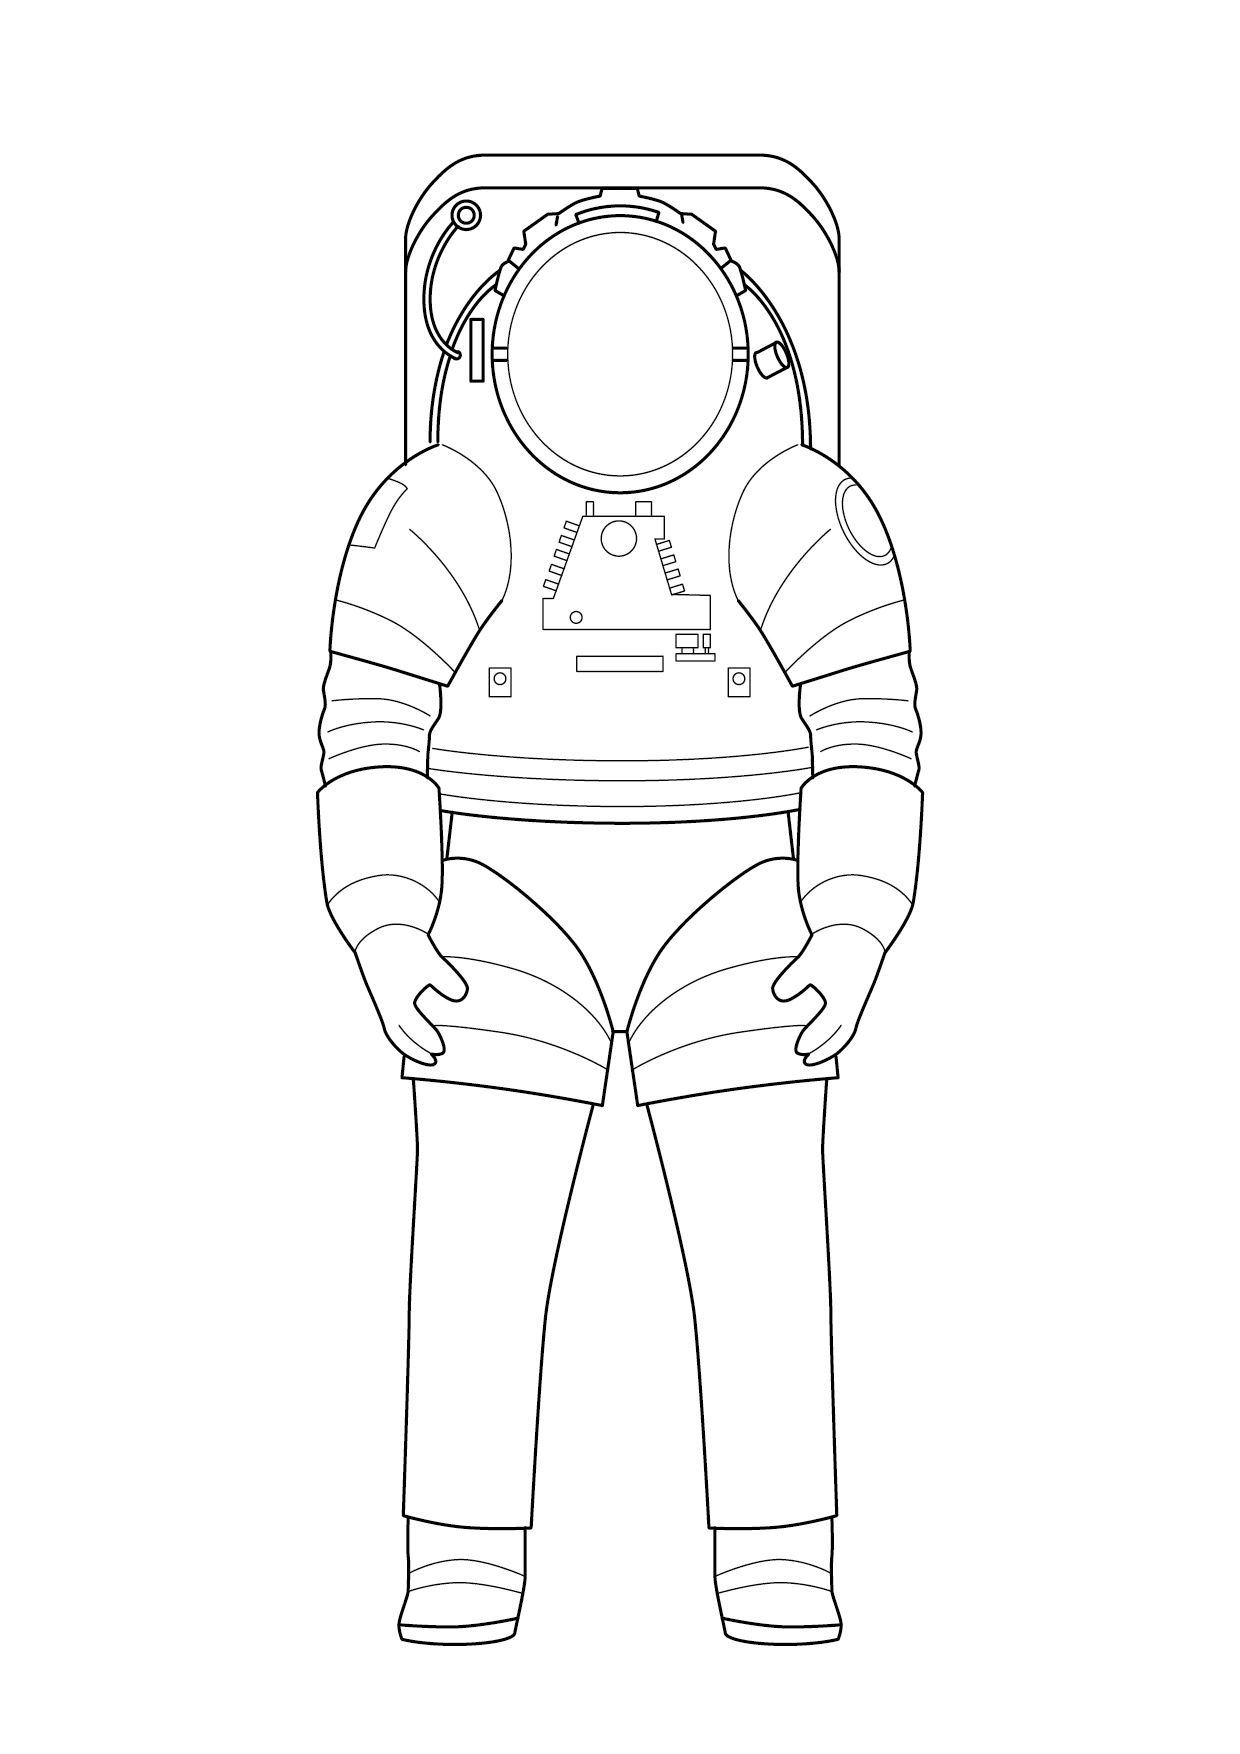 "<span class=""deutsch"">Man in space</span><span class=""englisch"">Man in space</span>"